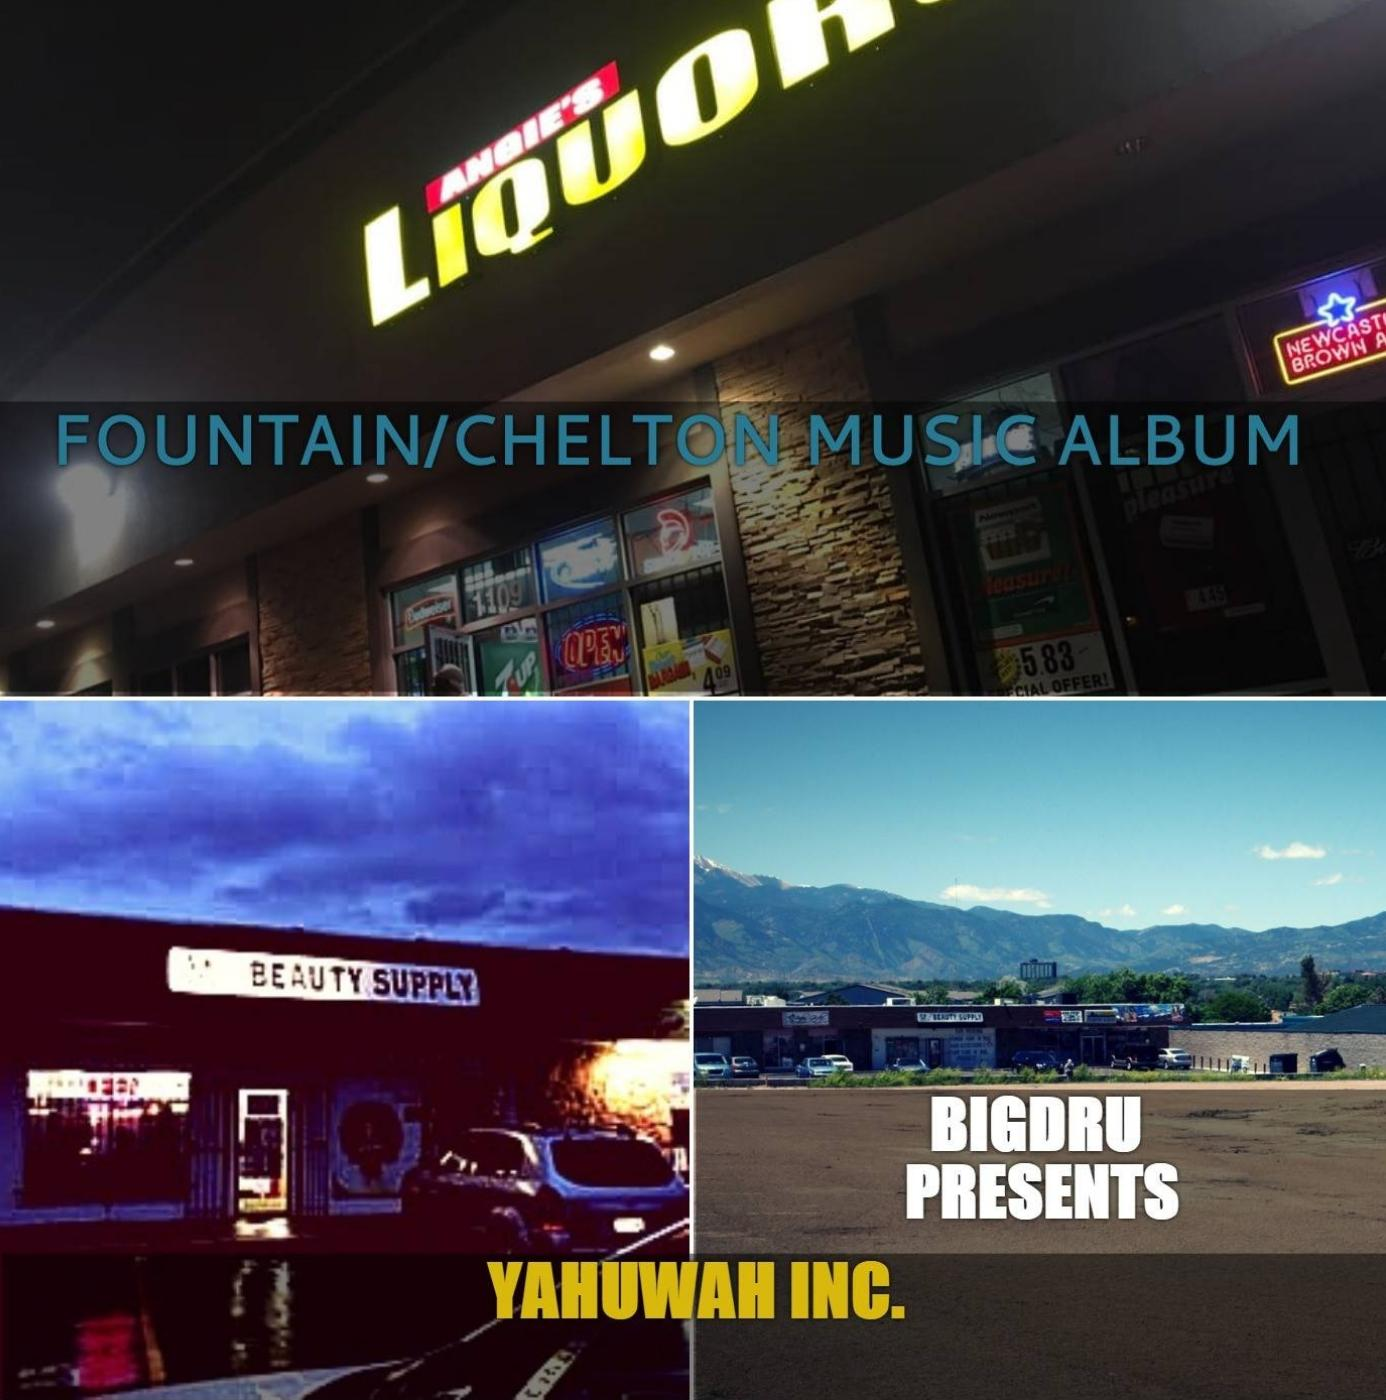 FOUNTAIN/CHELTON MUSIC ALBUM